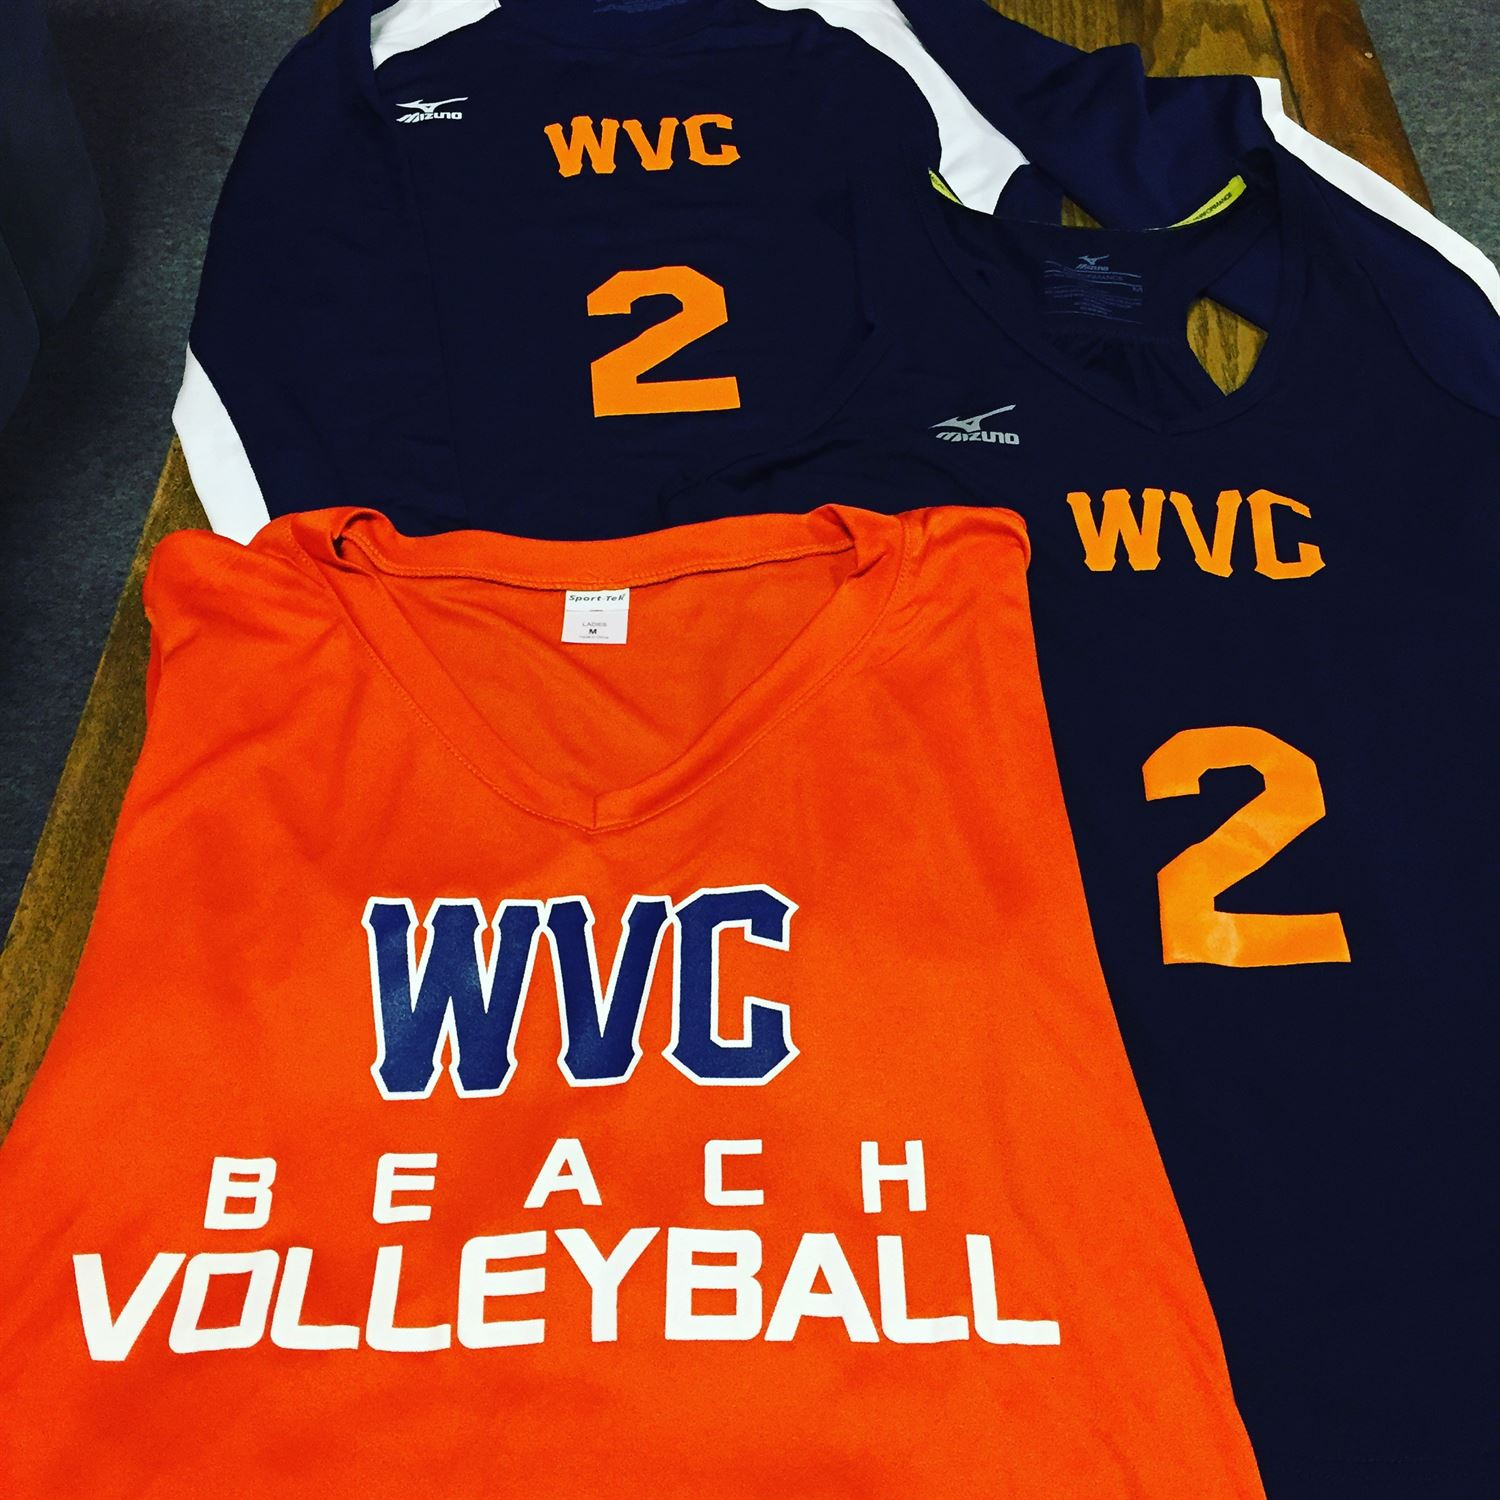 West Valley College - Women's Volleyball